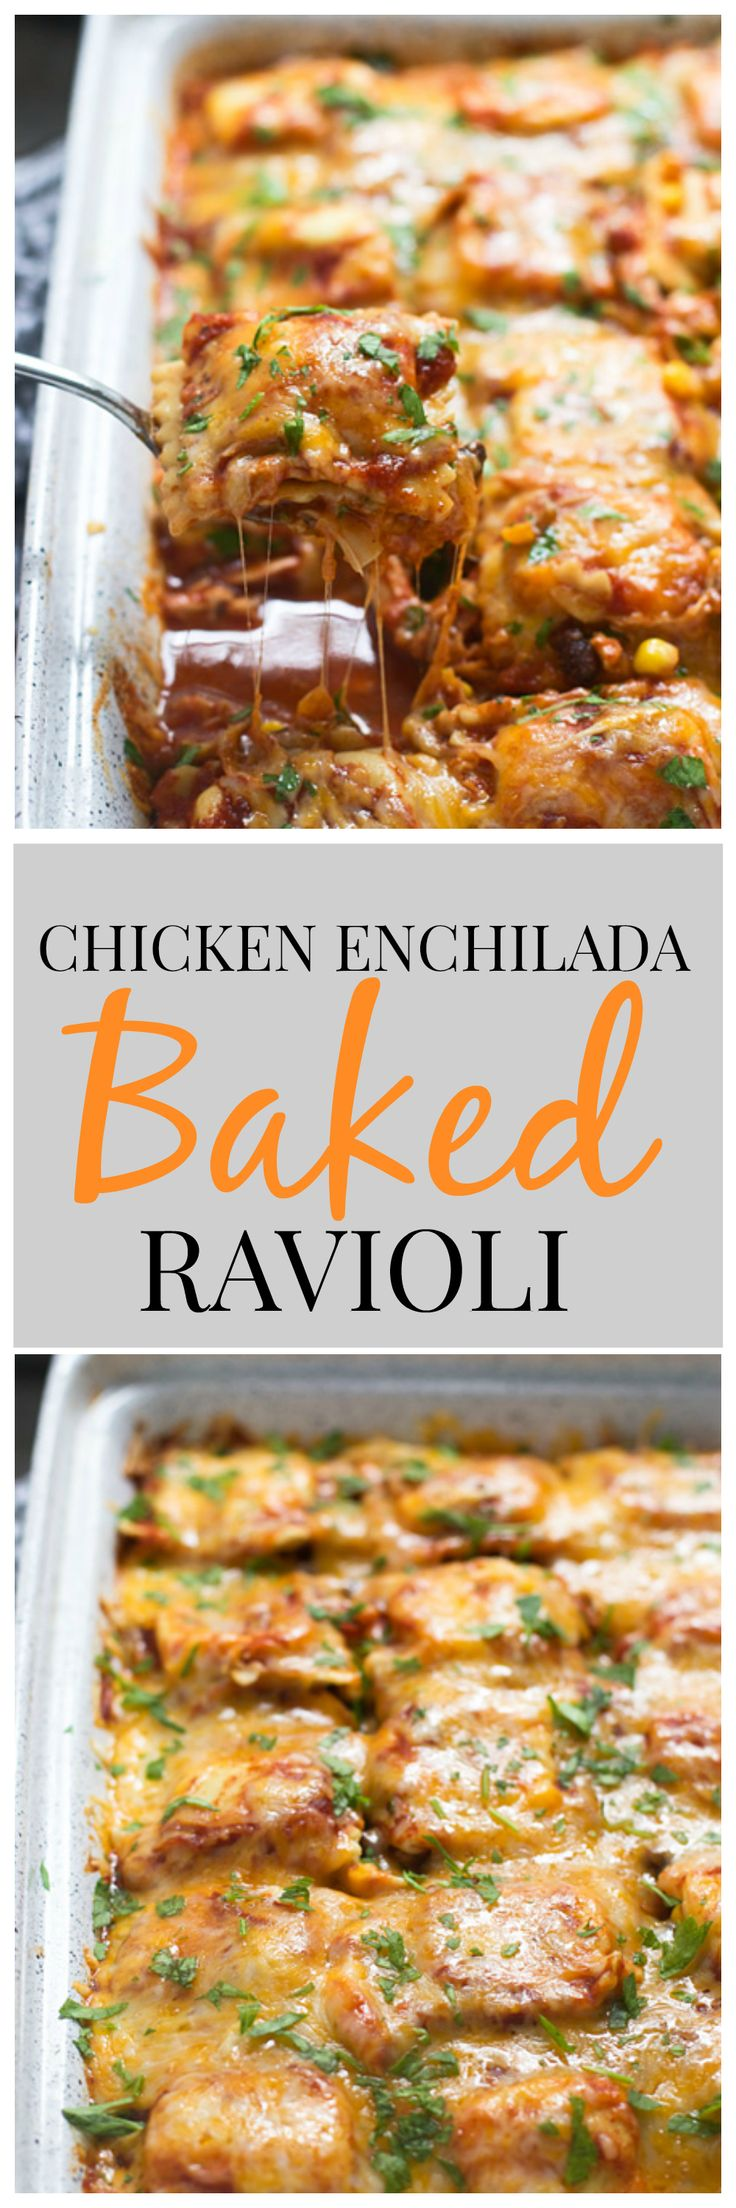 Chicken Enchilada Baked Ravioli - An easy, weeknight dinner the whole family will love!